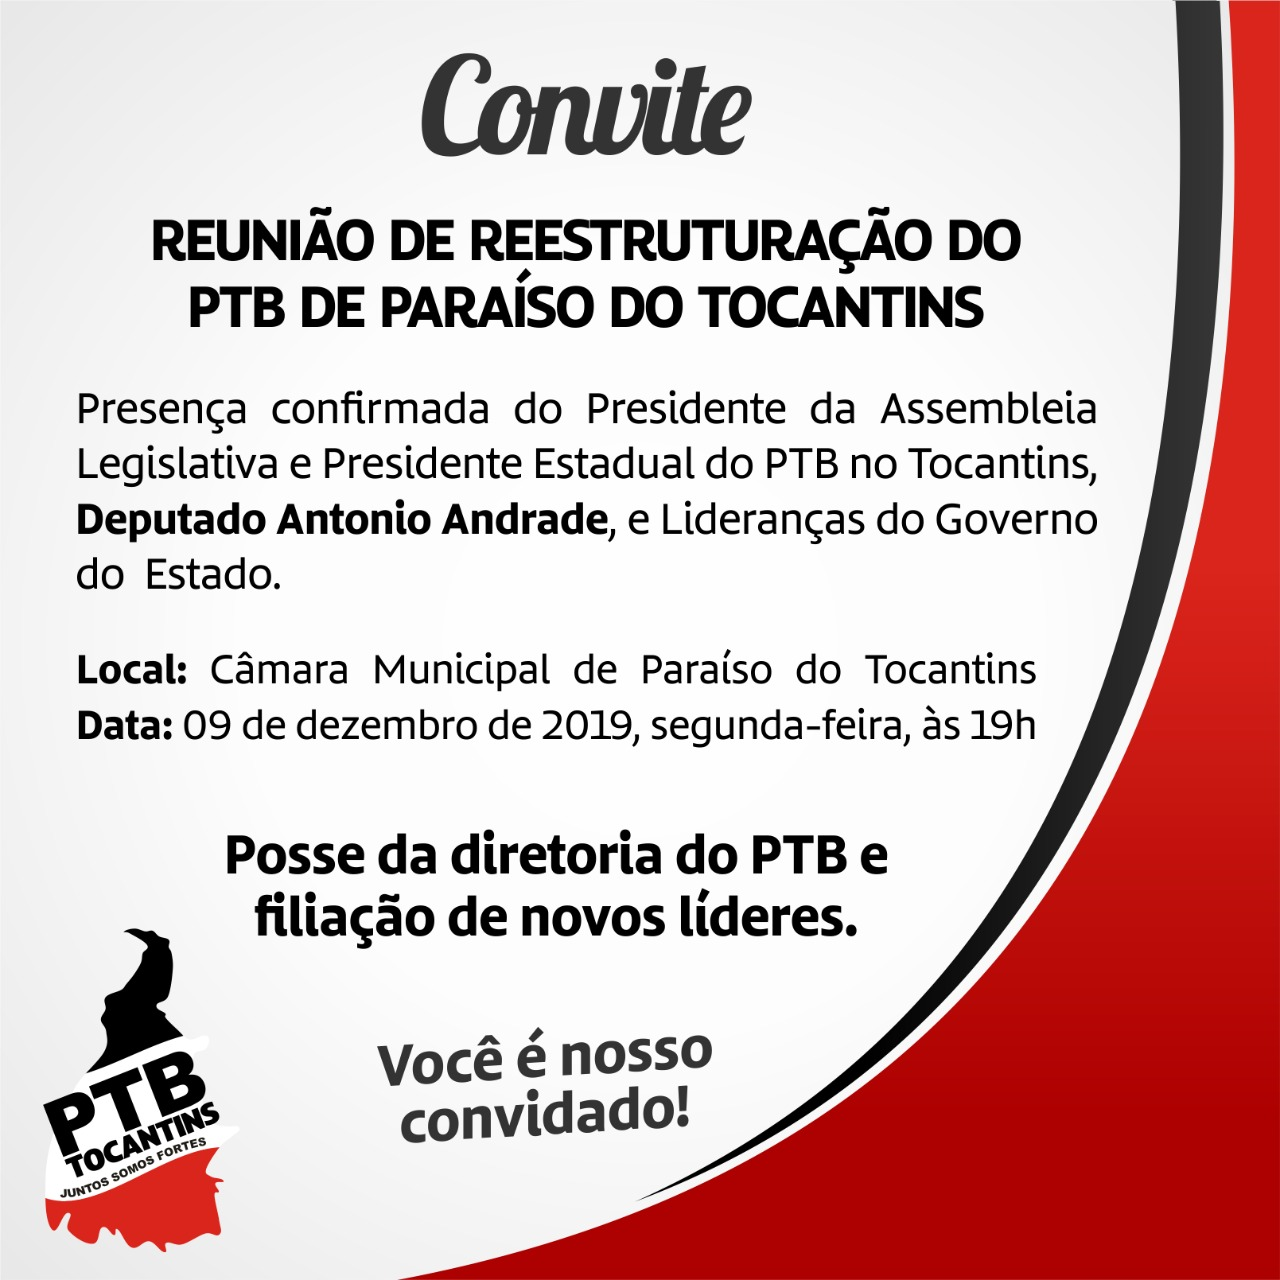 Presidente da Assembleia Legislativa do Tocantins participará de encontro do PTB em Paraíso TO